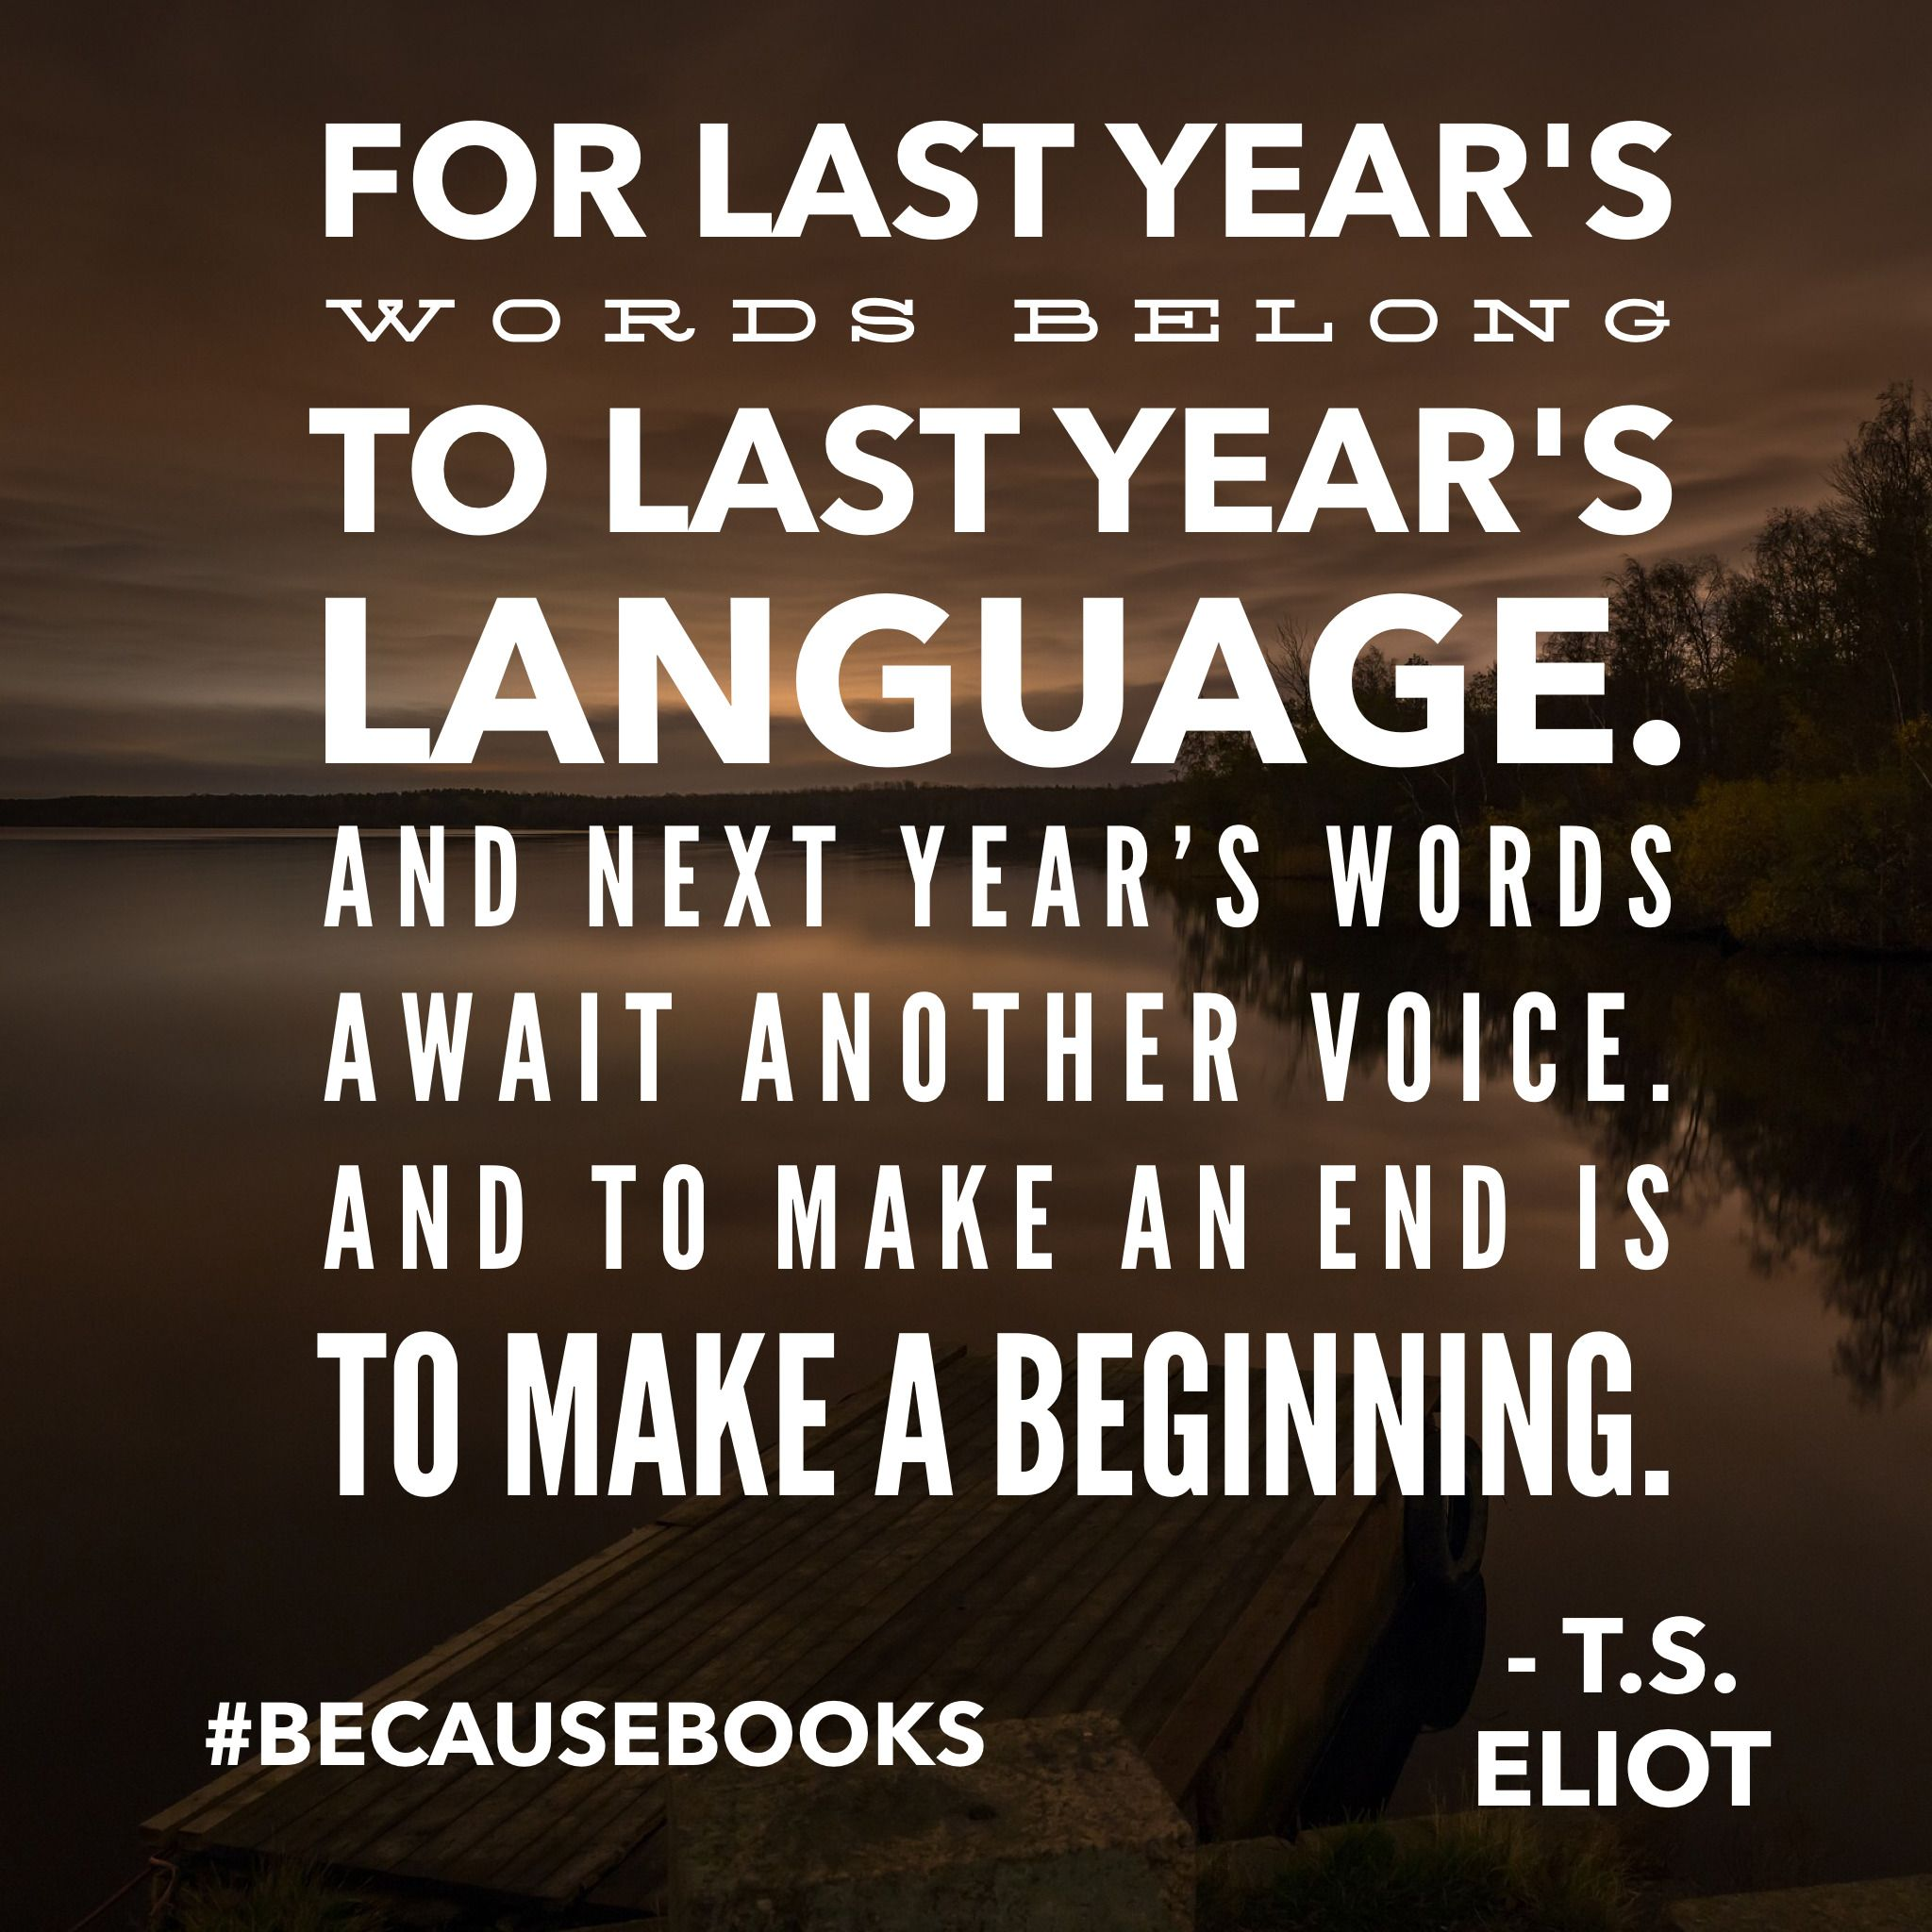 wise words for saying goodbye to the old year and welcoming the new year becausebooks upwardthinking becauseinspiring newyear